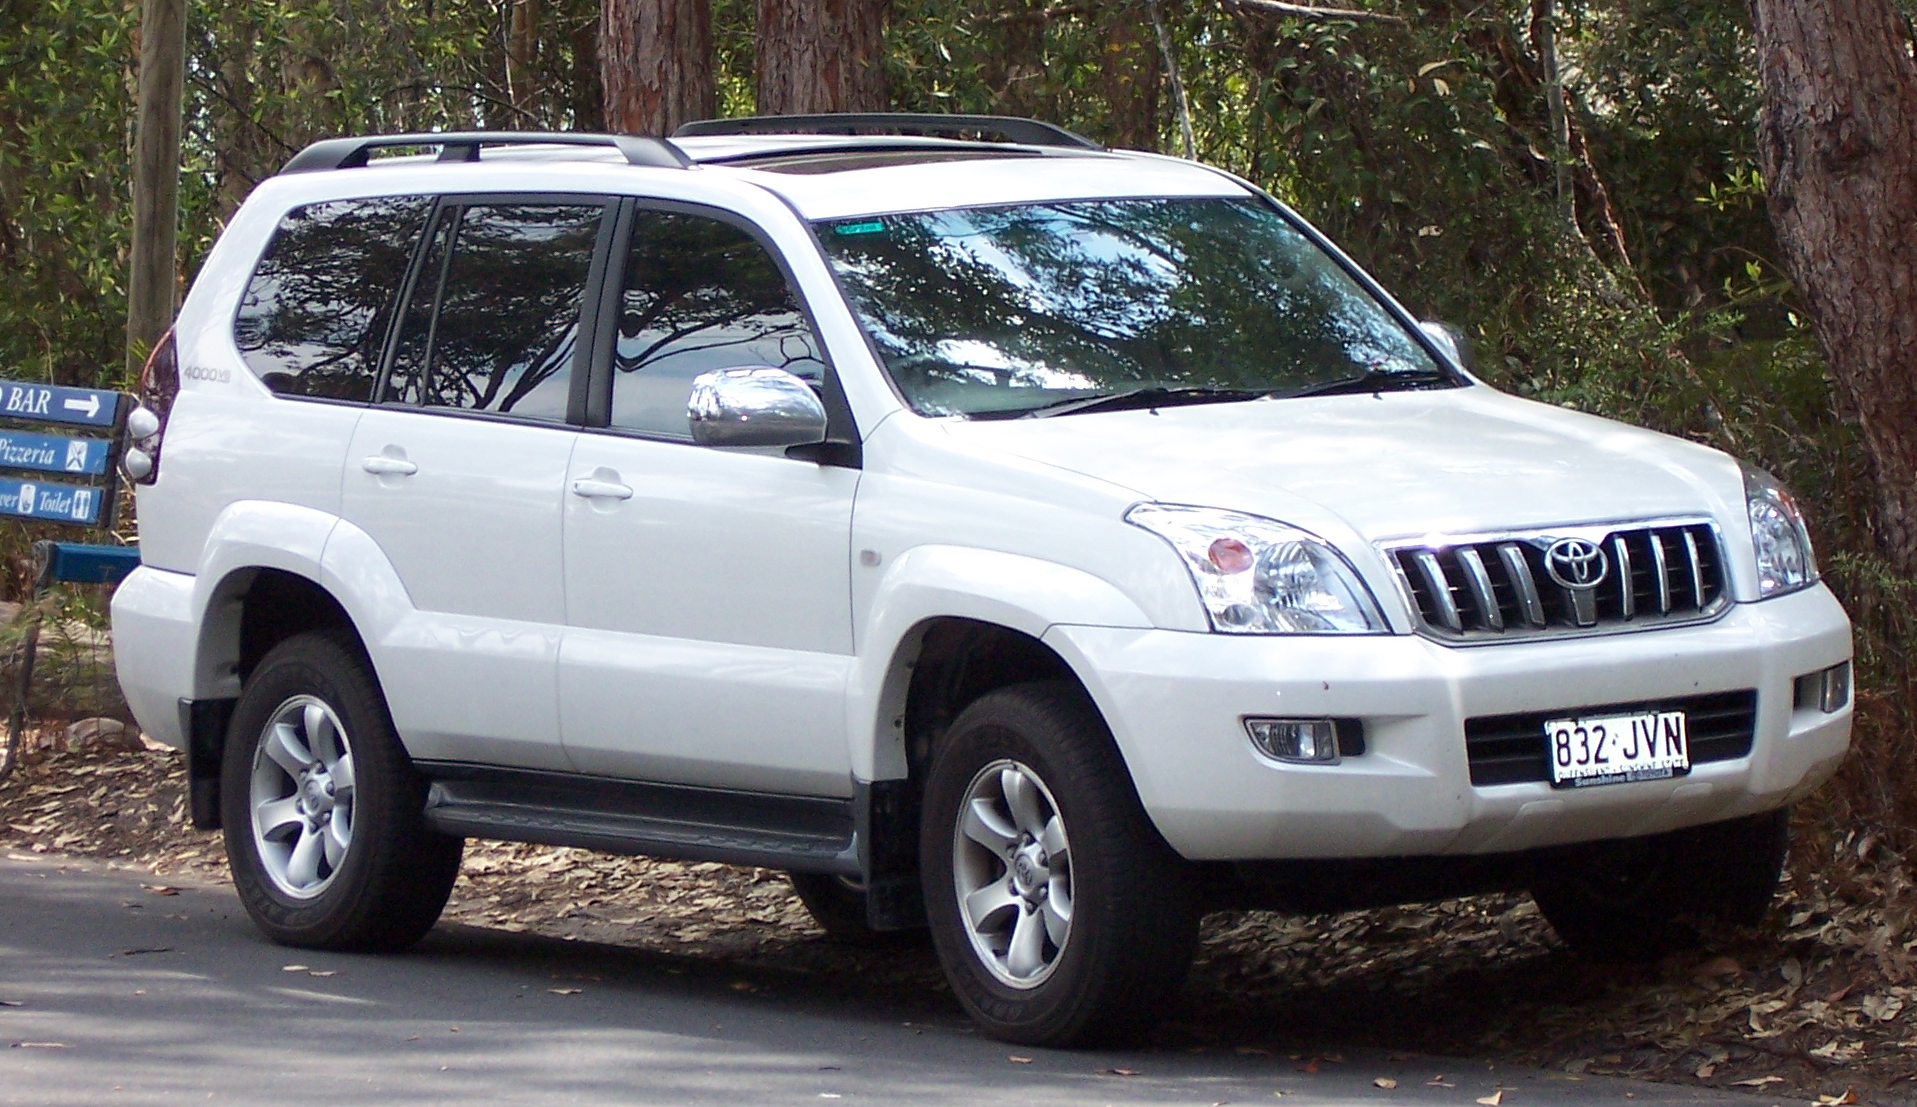 Description 2003-2007 Toyota Land Cruiser Prado (GRJ120R) 02.jpg